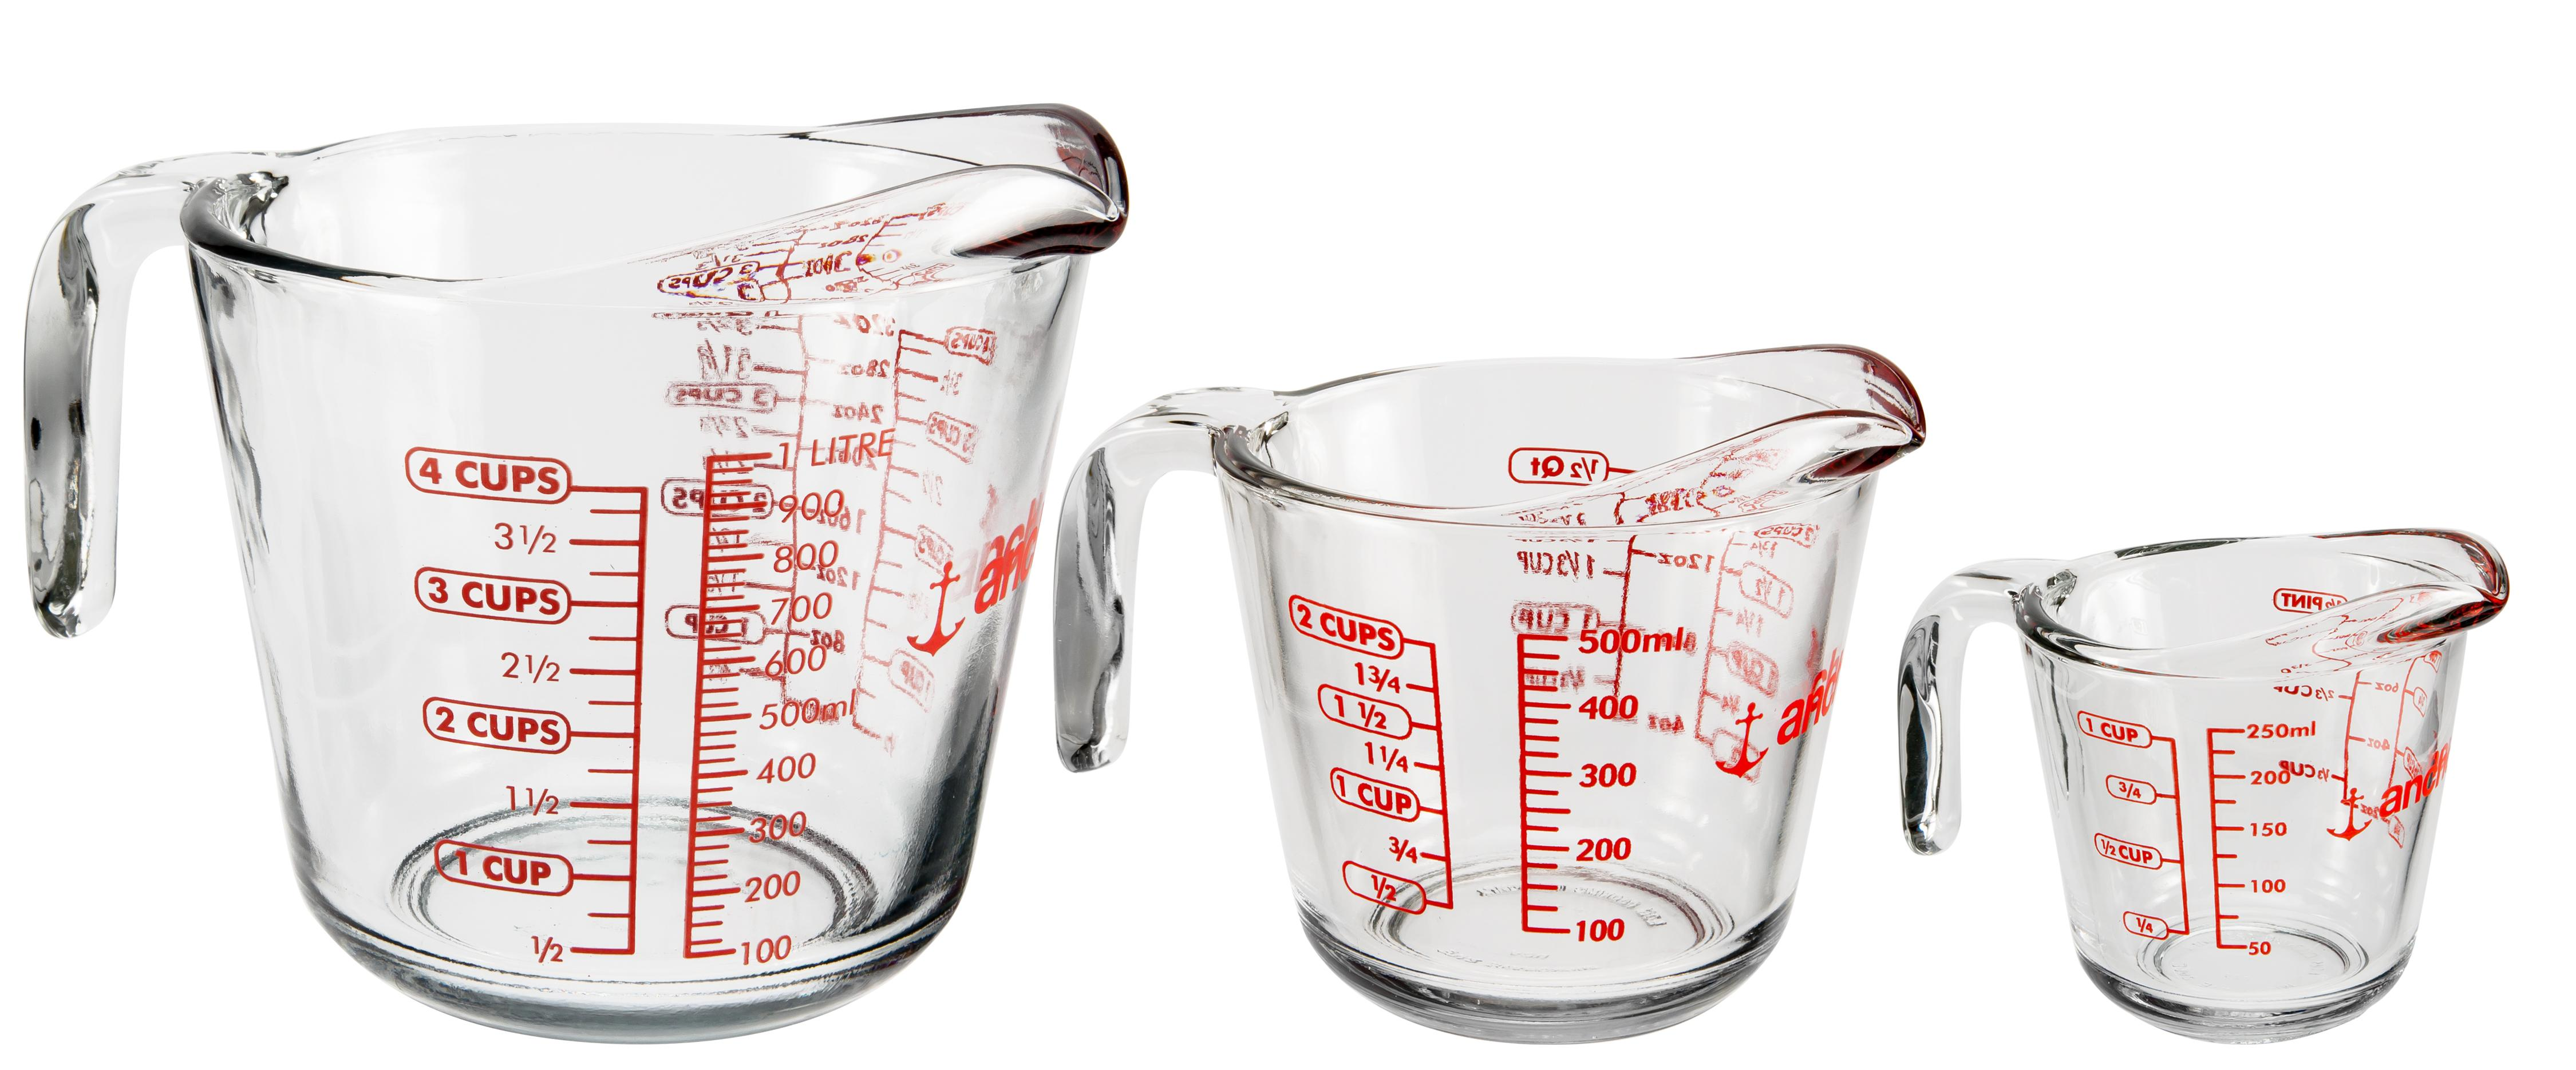 Buy 1 Cup Measuring Cup from Bed Bath amp Beyond